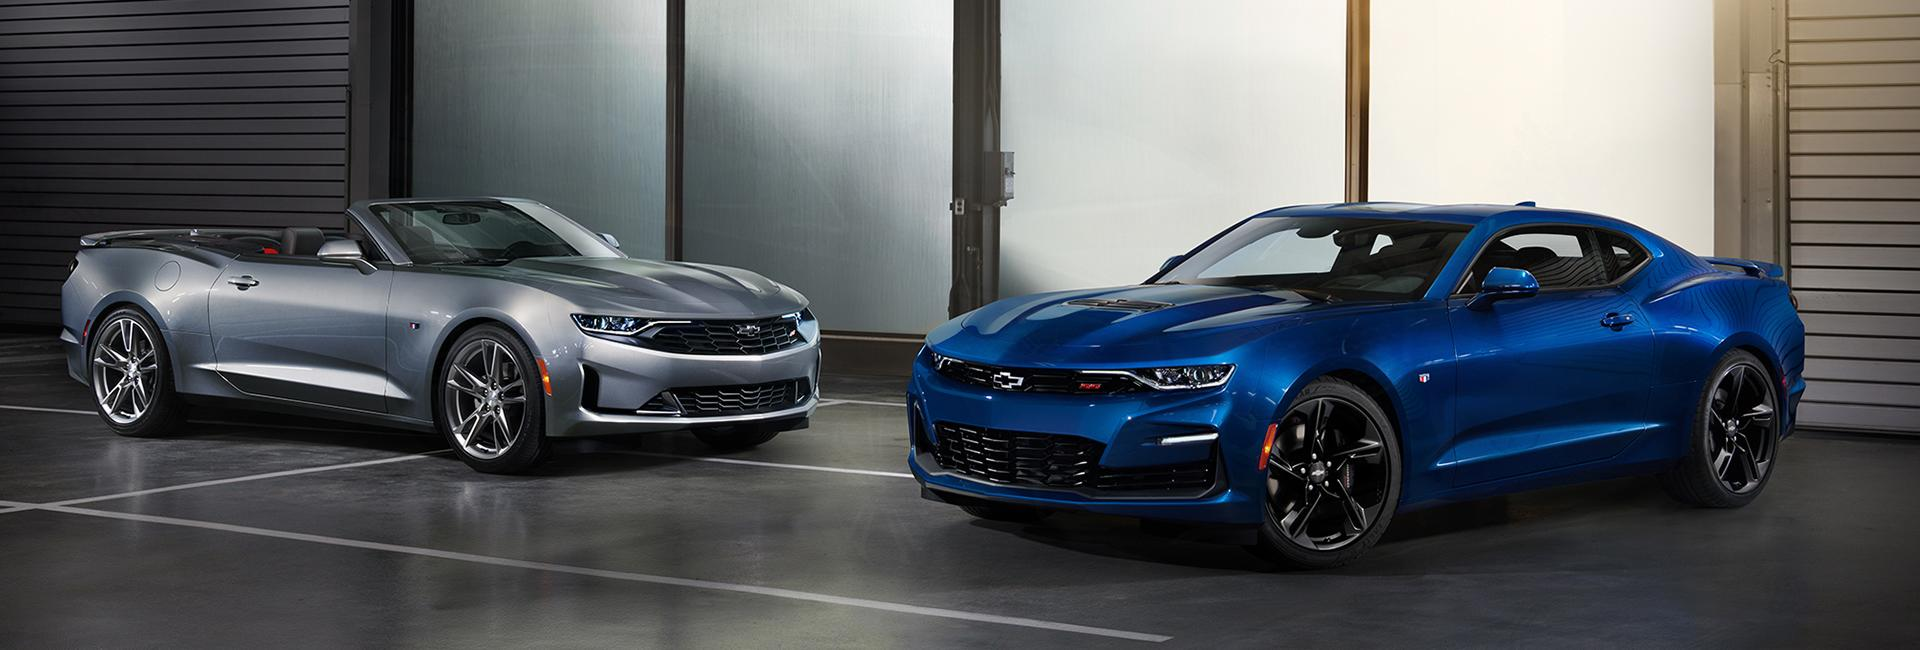 Picture of the 2020 Chevy Camaro for sale at Spitzer Chevy Northfield Ohio